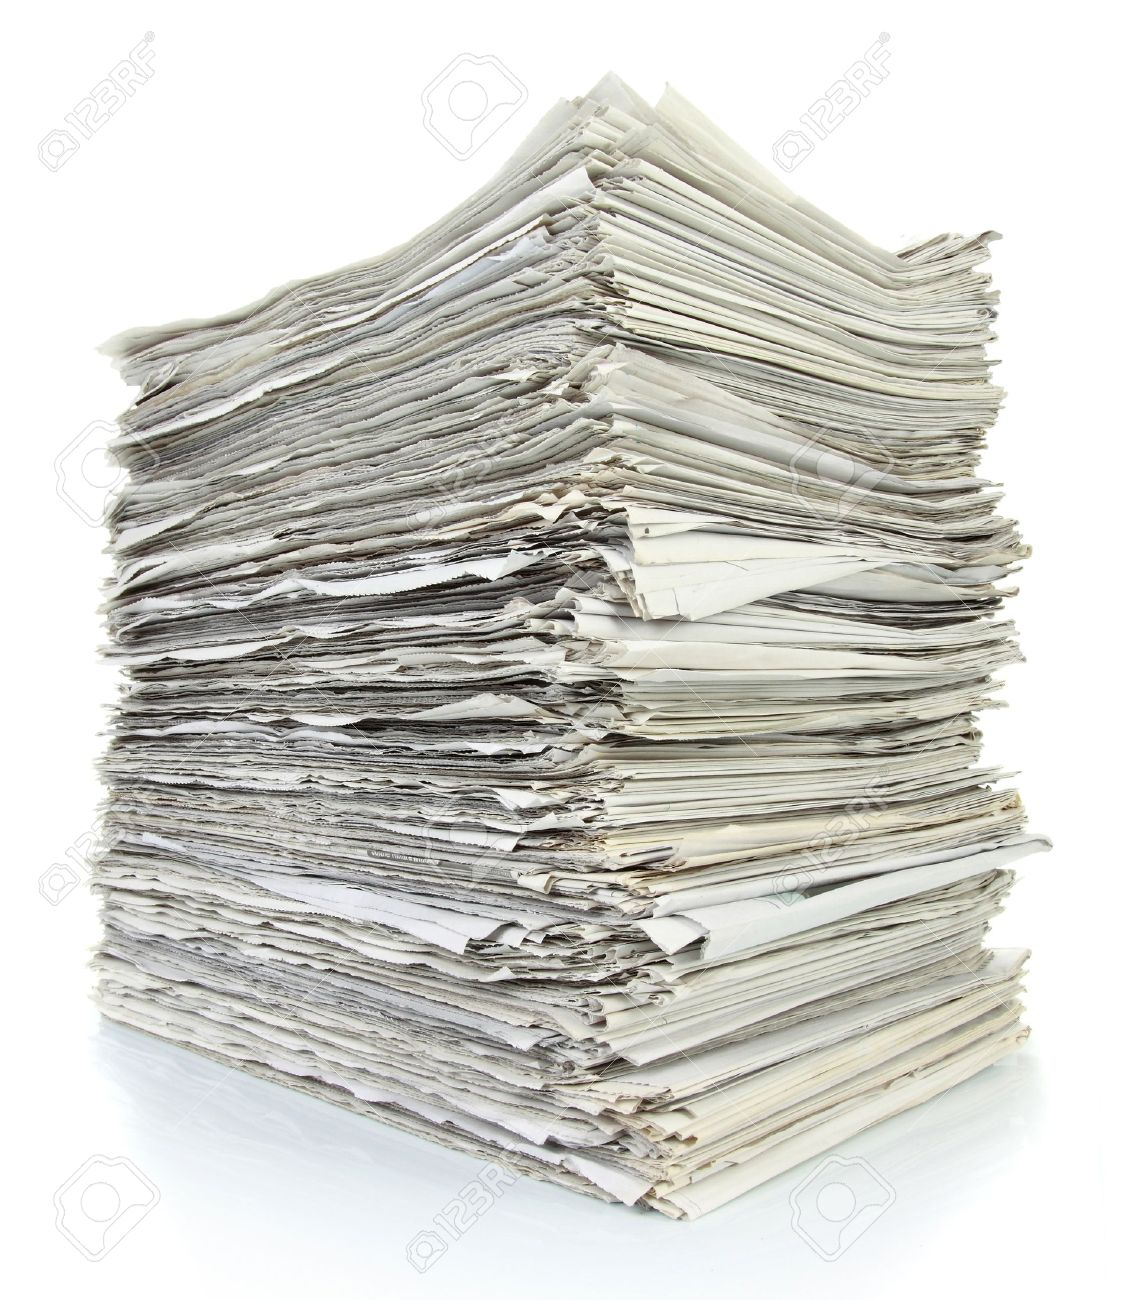 Stack of newspaper on white background Stock Photo - 11011811